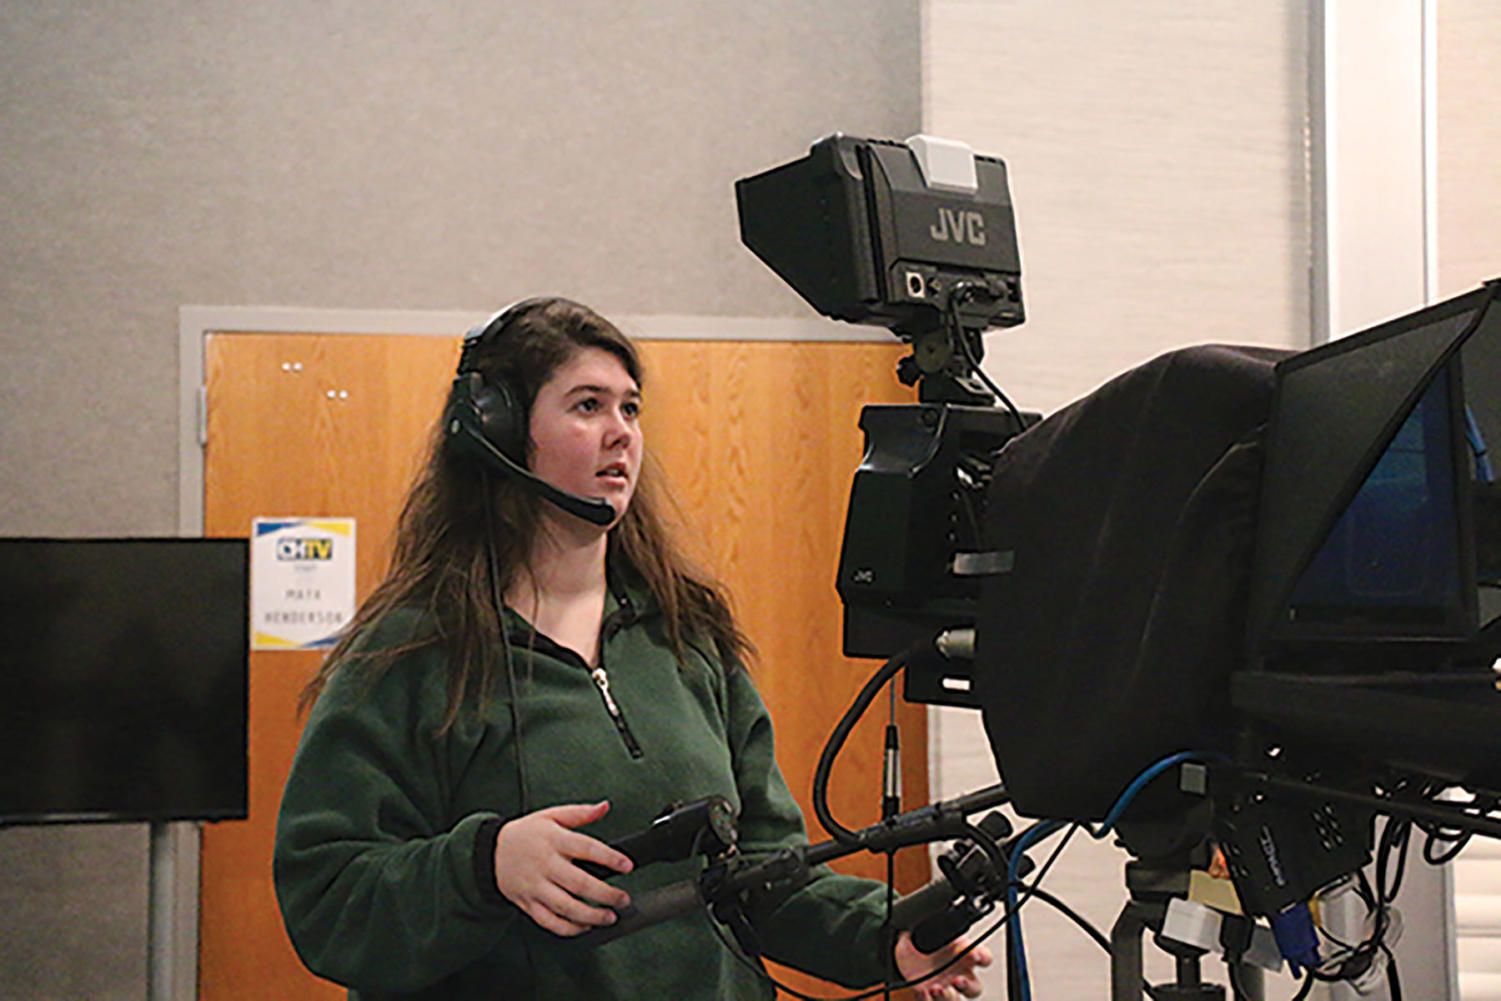 Maria Saam, CHTV Director and senior, adjusts the camera angle during the morning SRT show. Saam is one of the main directors and in charge of stage setting, lighting and audio  cuts during  the show.